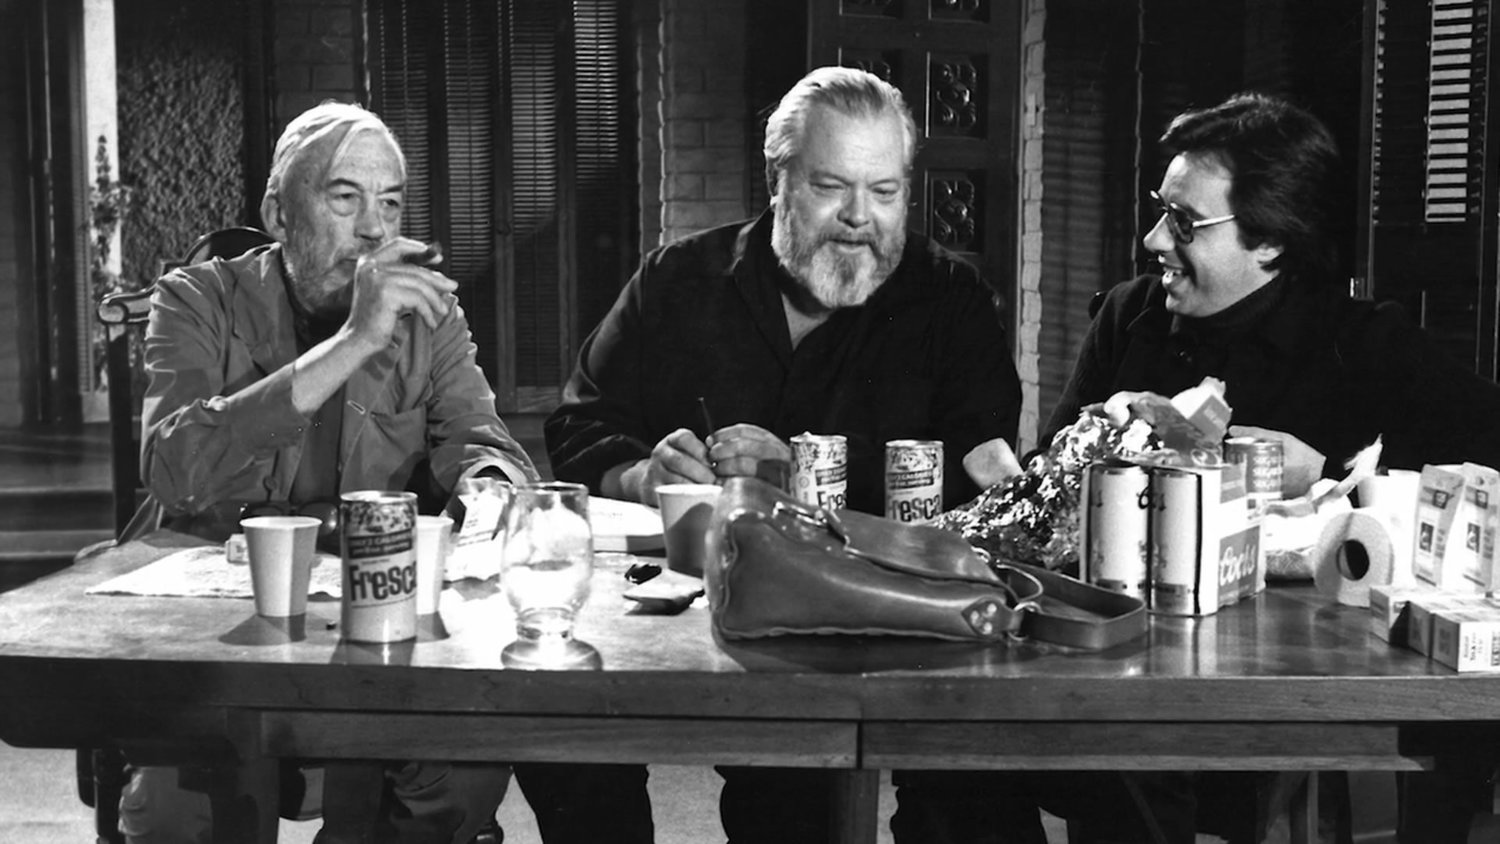 Netflix Will Restore and Complete Orson Welles' Final Film THE OTHER SIDE OF THE WIND